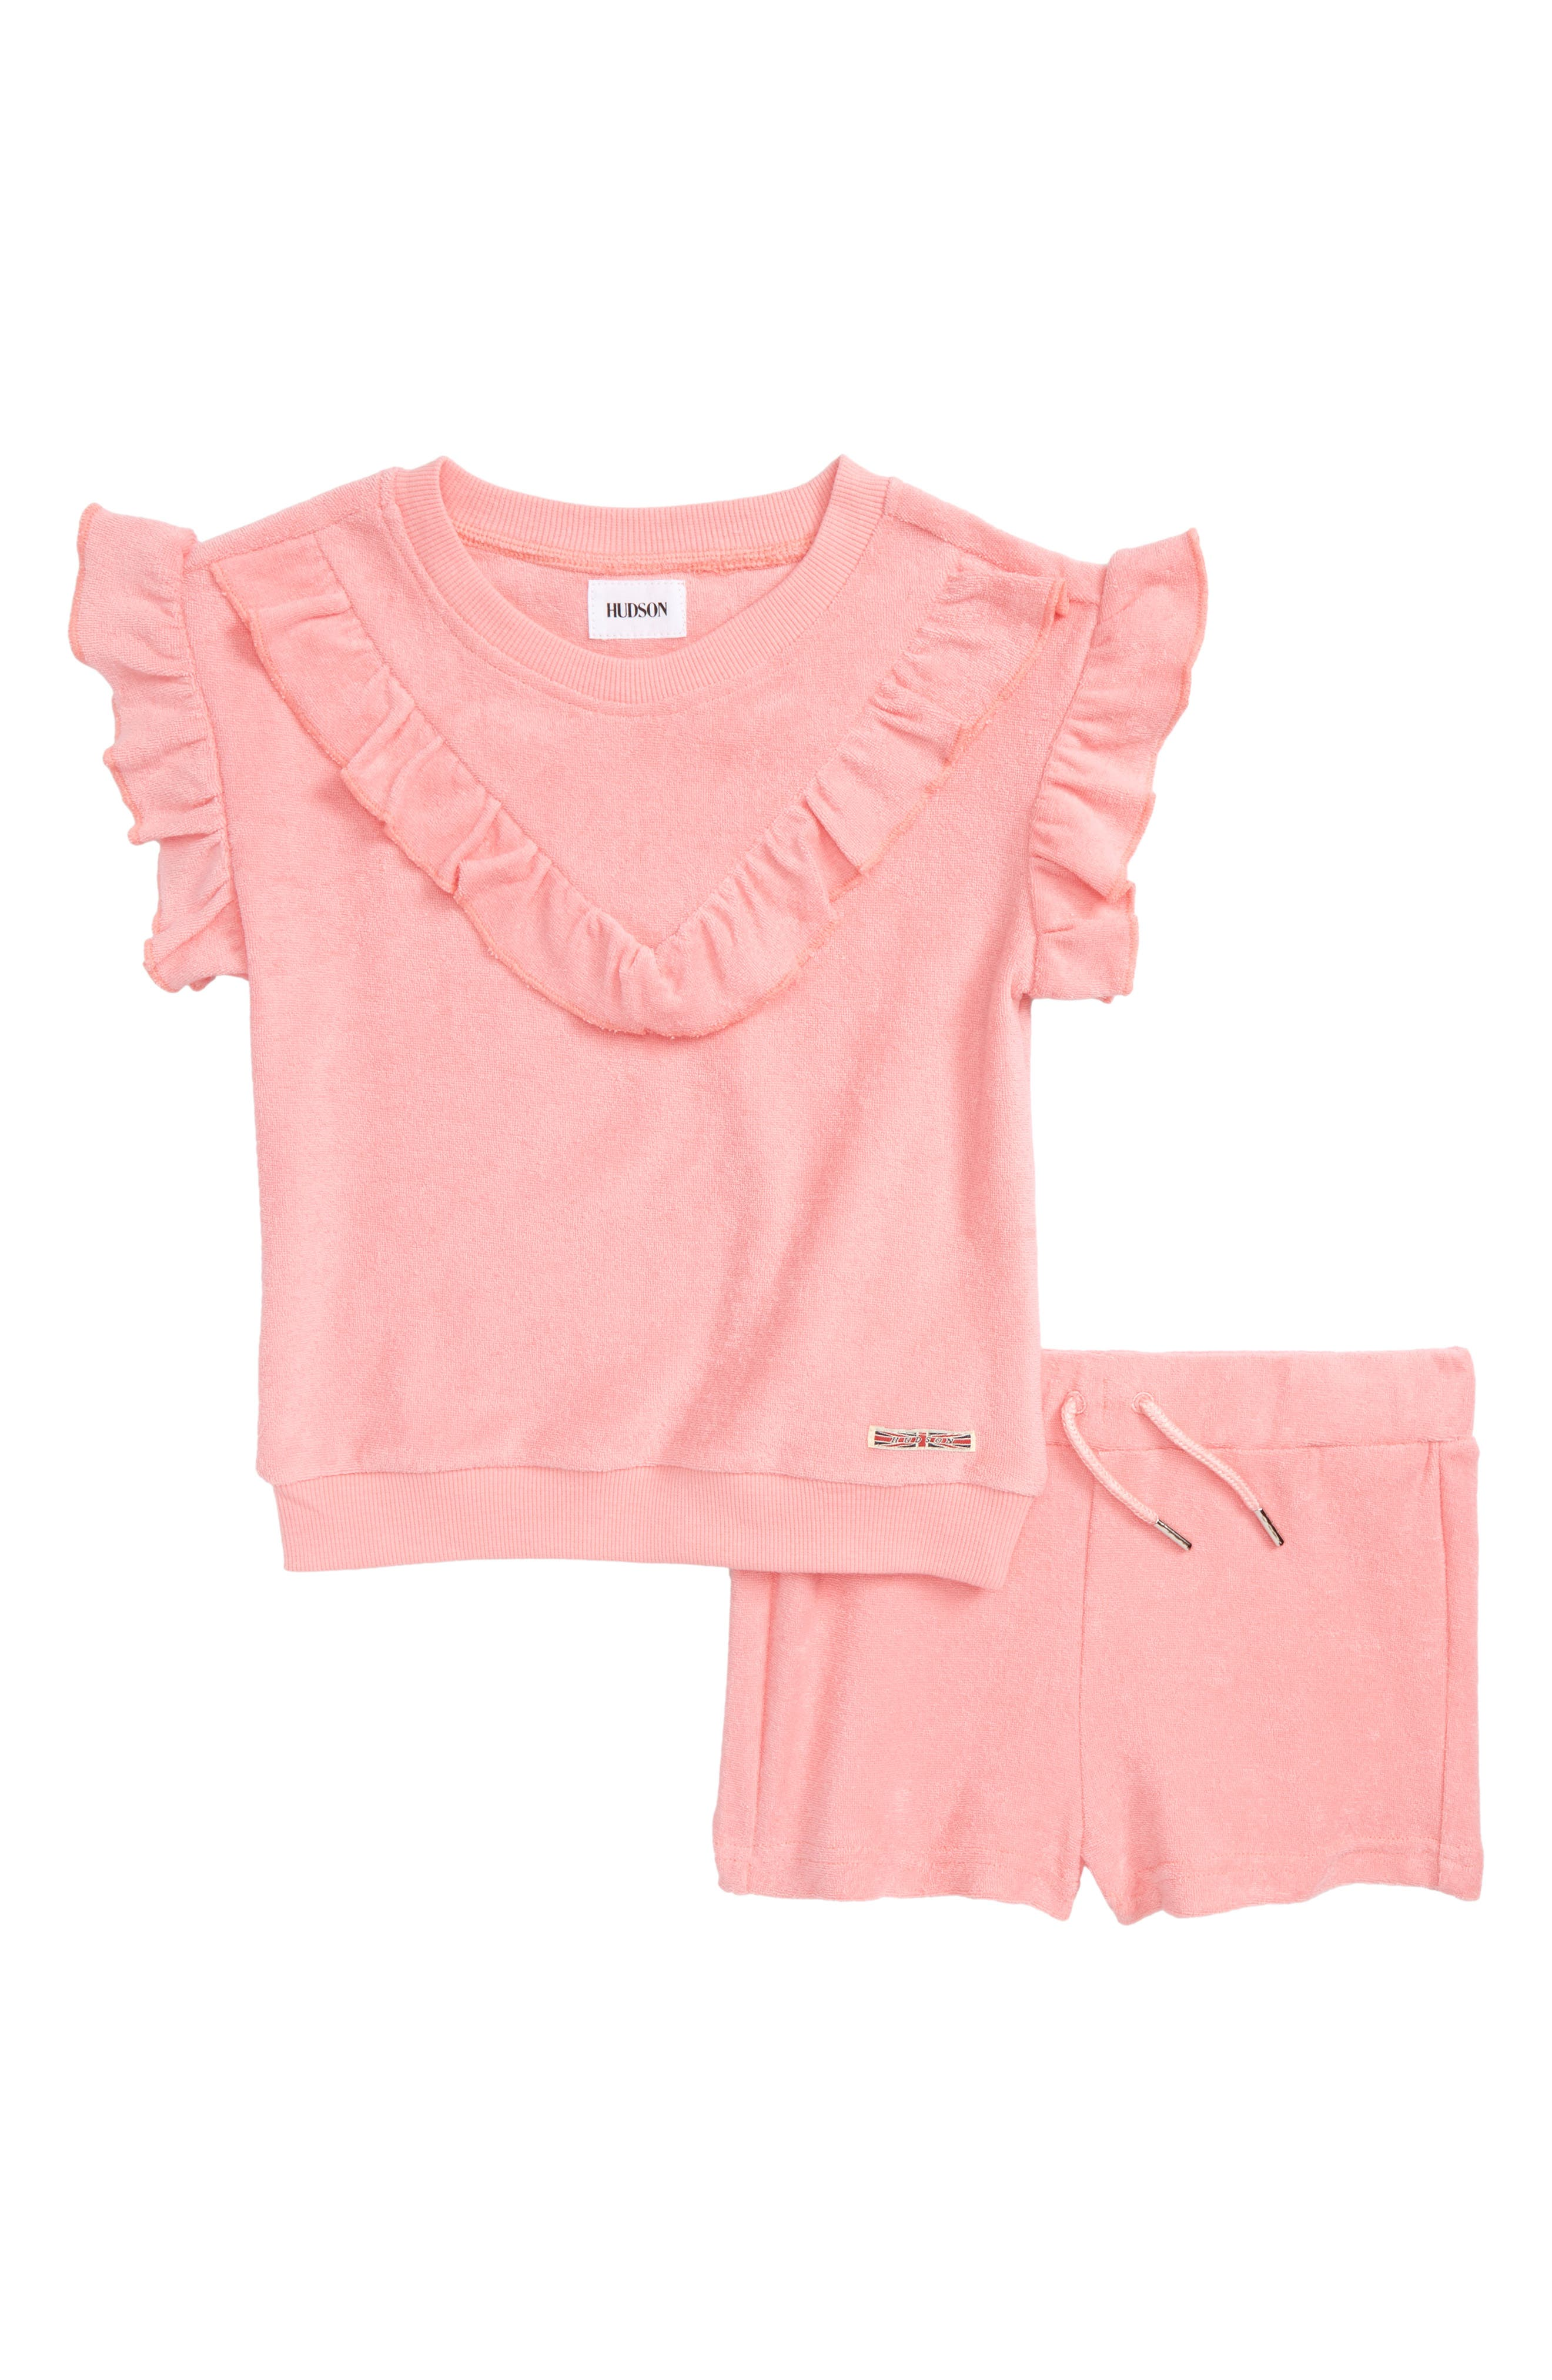 French Terry Ruffle Top & Shorts Set,                         Main,                         color, 951